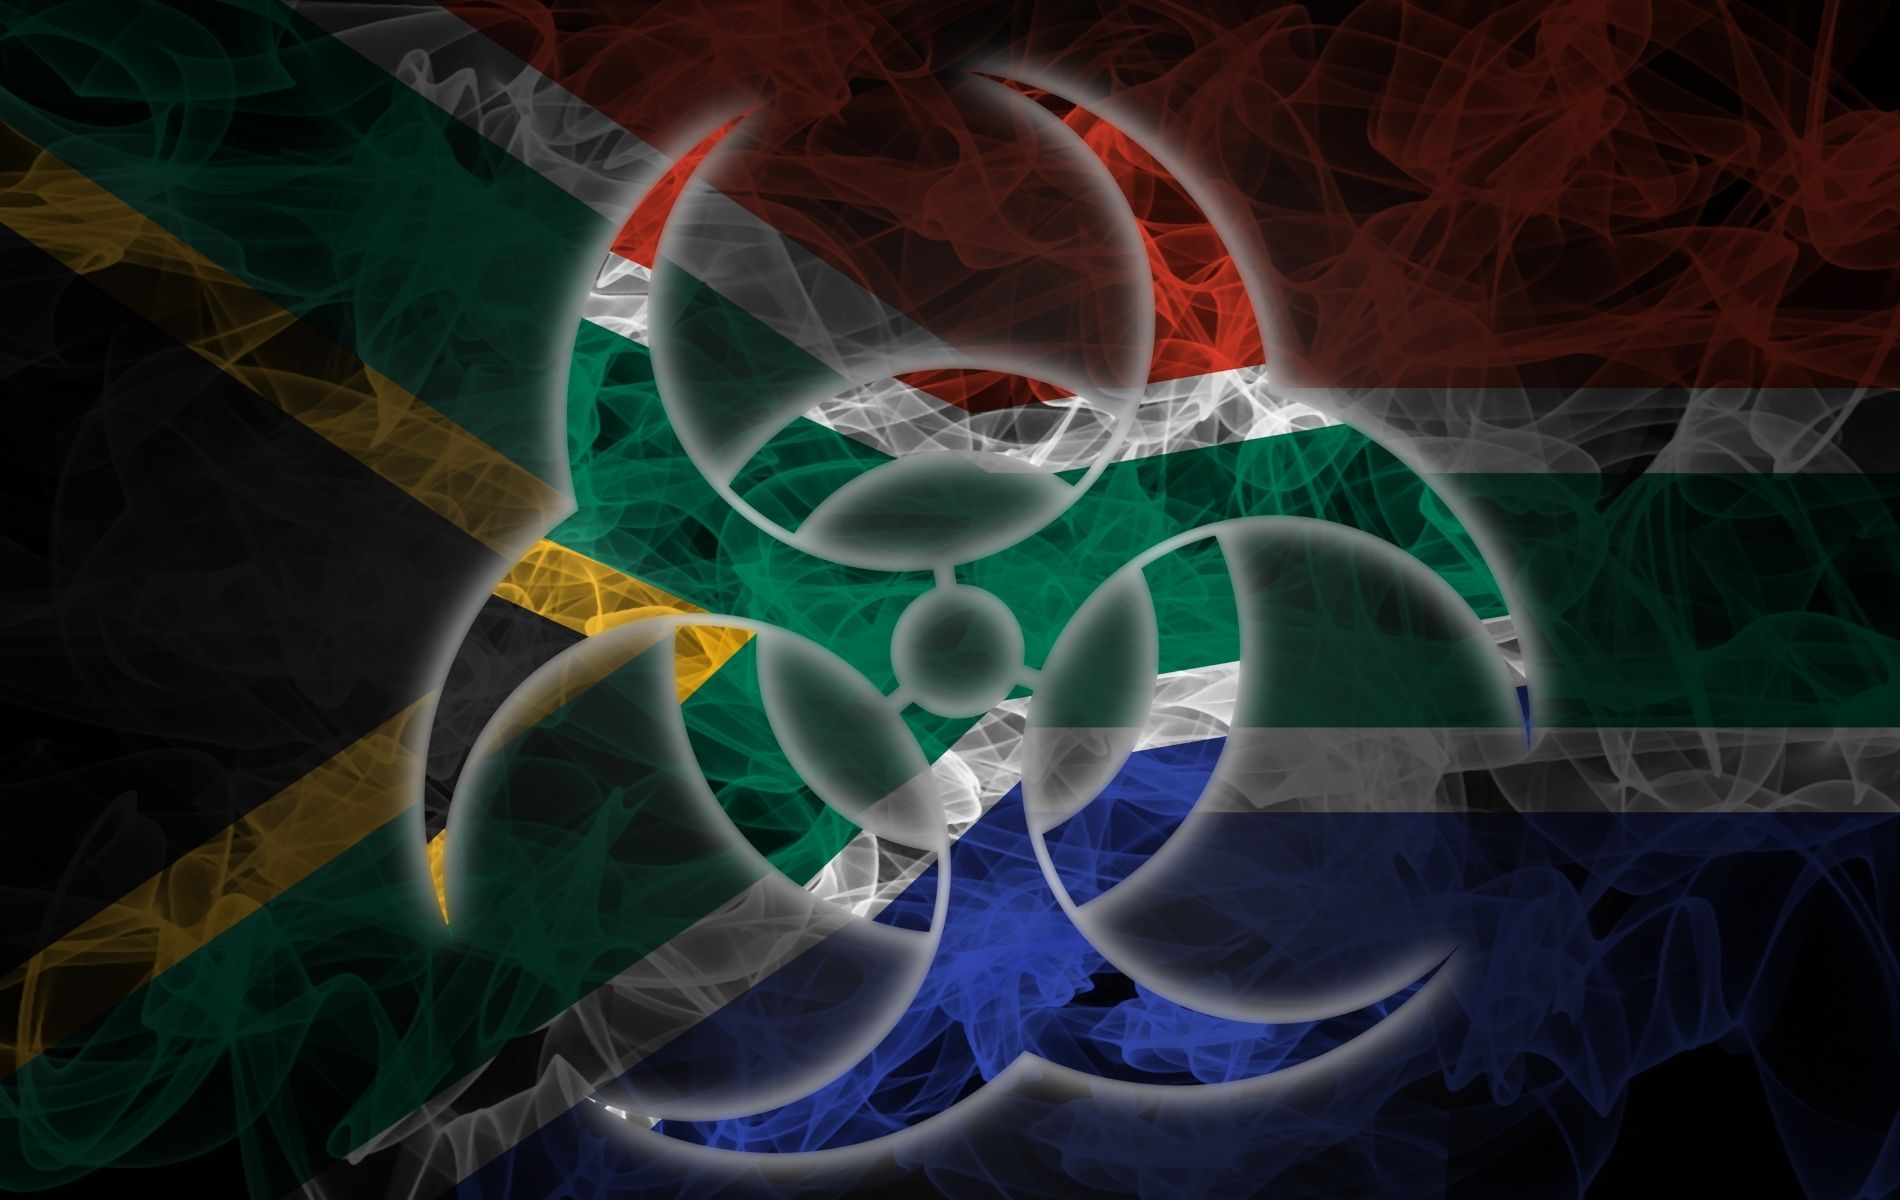 The Cost of Cyber Crime in South Africa is Taking Its Toll